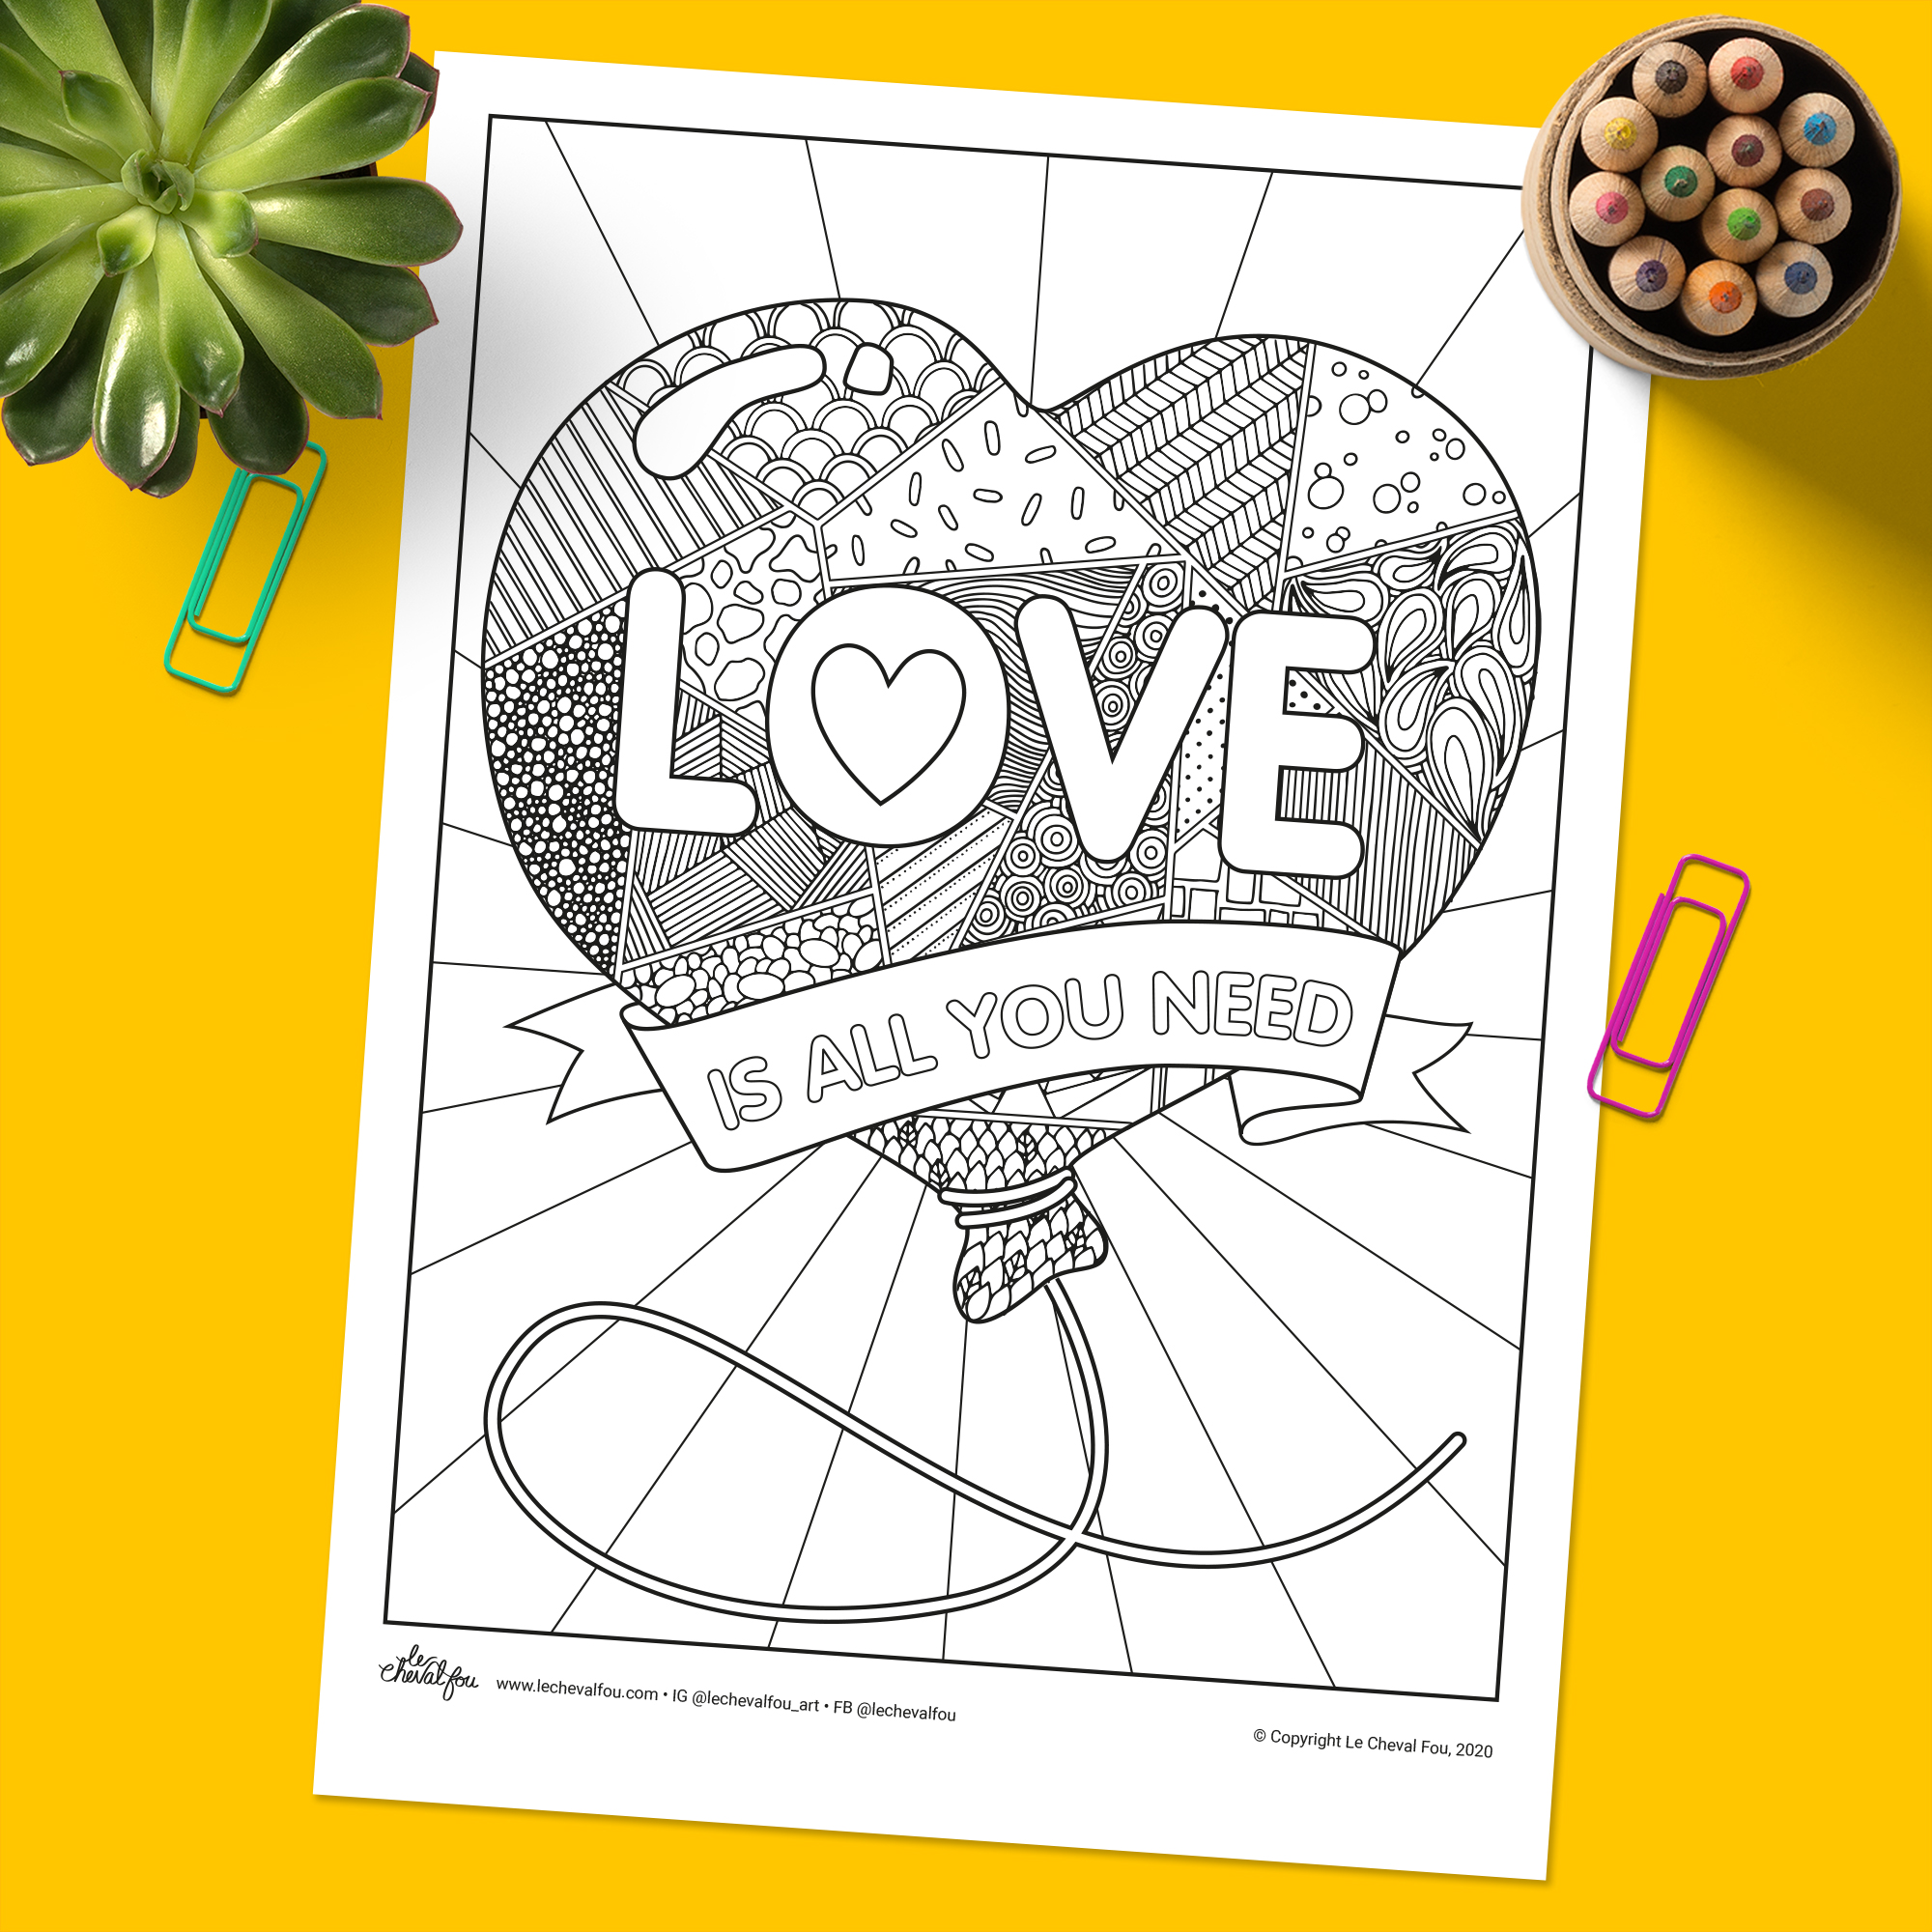 A fun and funky colouring sheet suitable for both kids and adults. Colour it in and send it to a family member or neighbour!